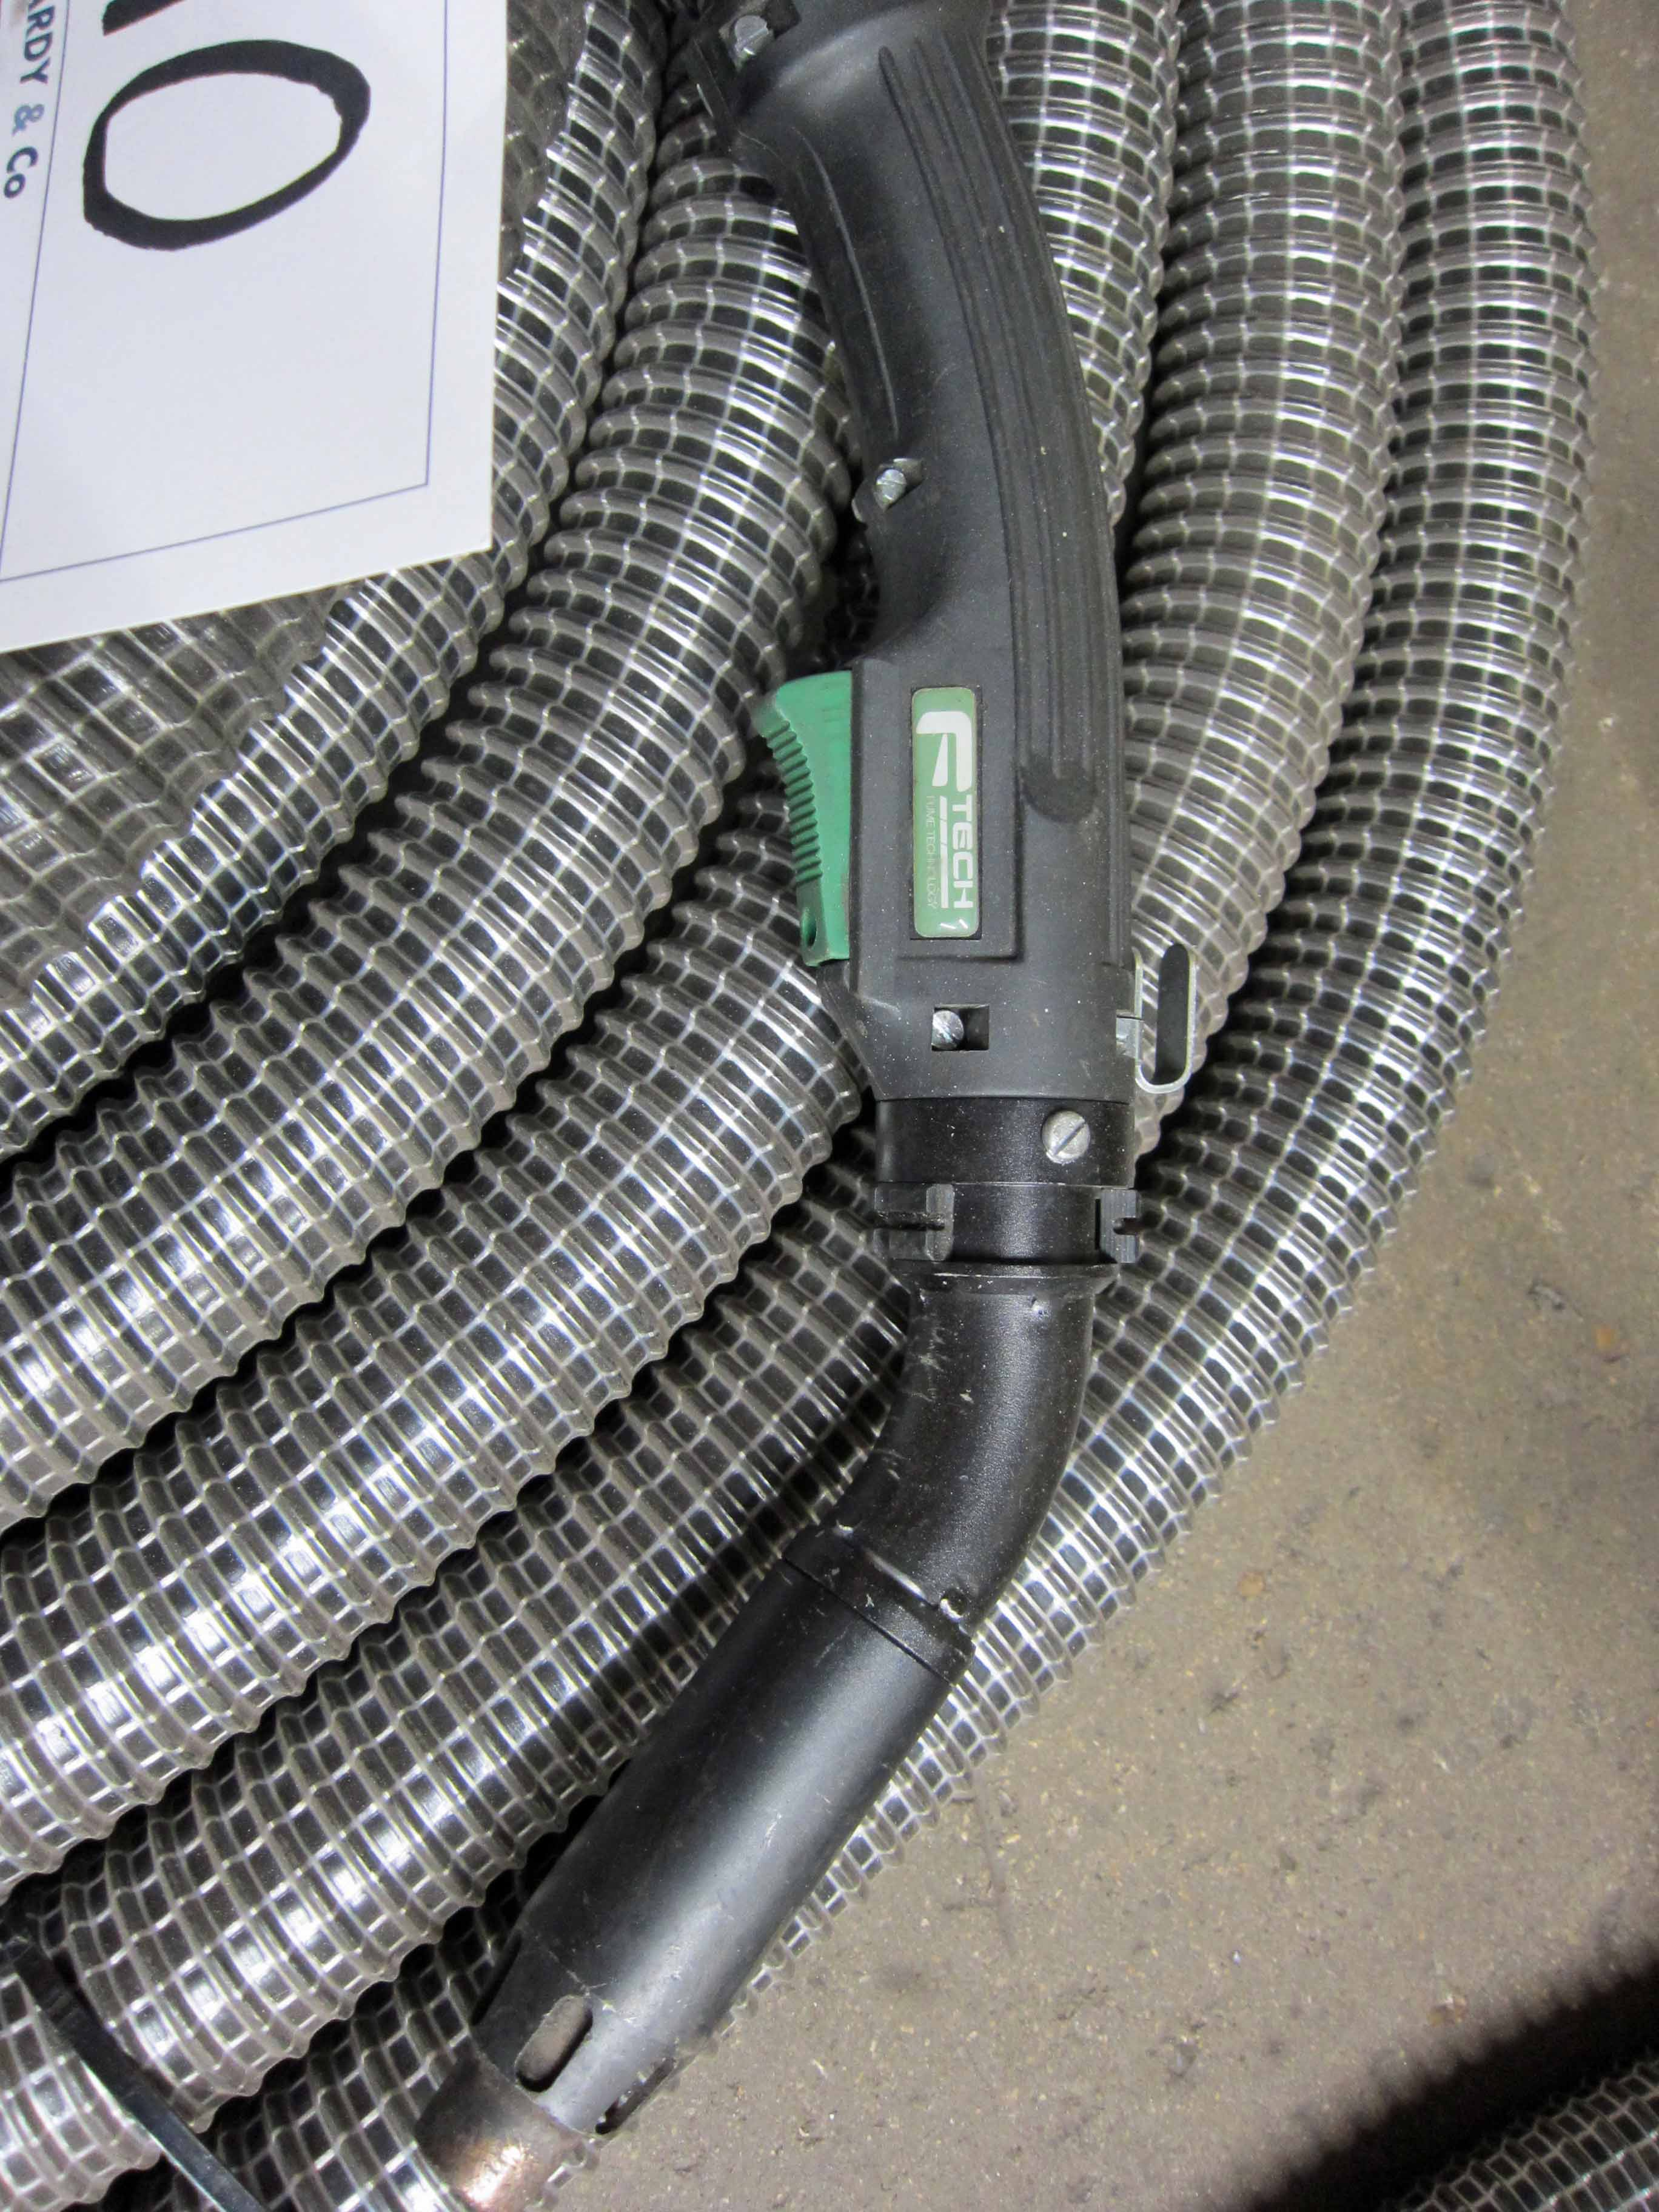 A WELDABILITY SIF Model EXTSVAC 240 240V Mobile Fume Extractor complete with F-TECH Fume - Image 3 of 3